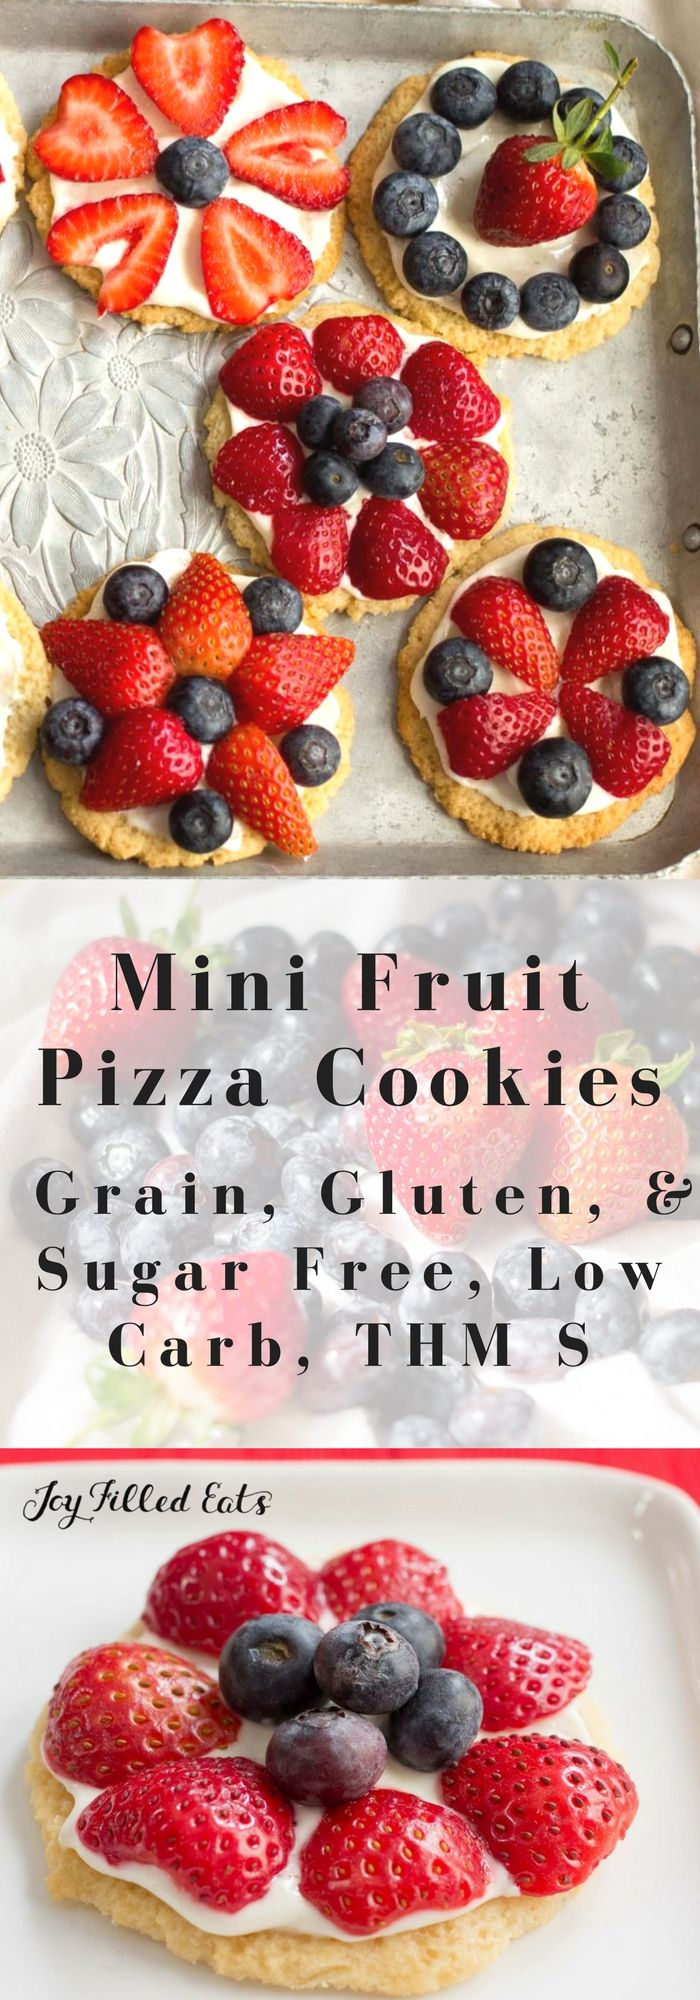 Mini Fruit Pizza Cookies - Low Carb, Grain Gluten Sugar Free, THM S - My Mini Fruit Pizza Cookies are as tasty as they are pretty. With a shortbread crust, cream cheese icing, & fresh berries they are a perfect dessert. via @joyfilledeats